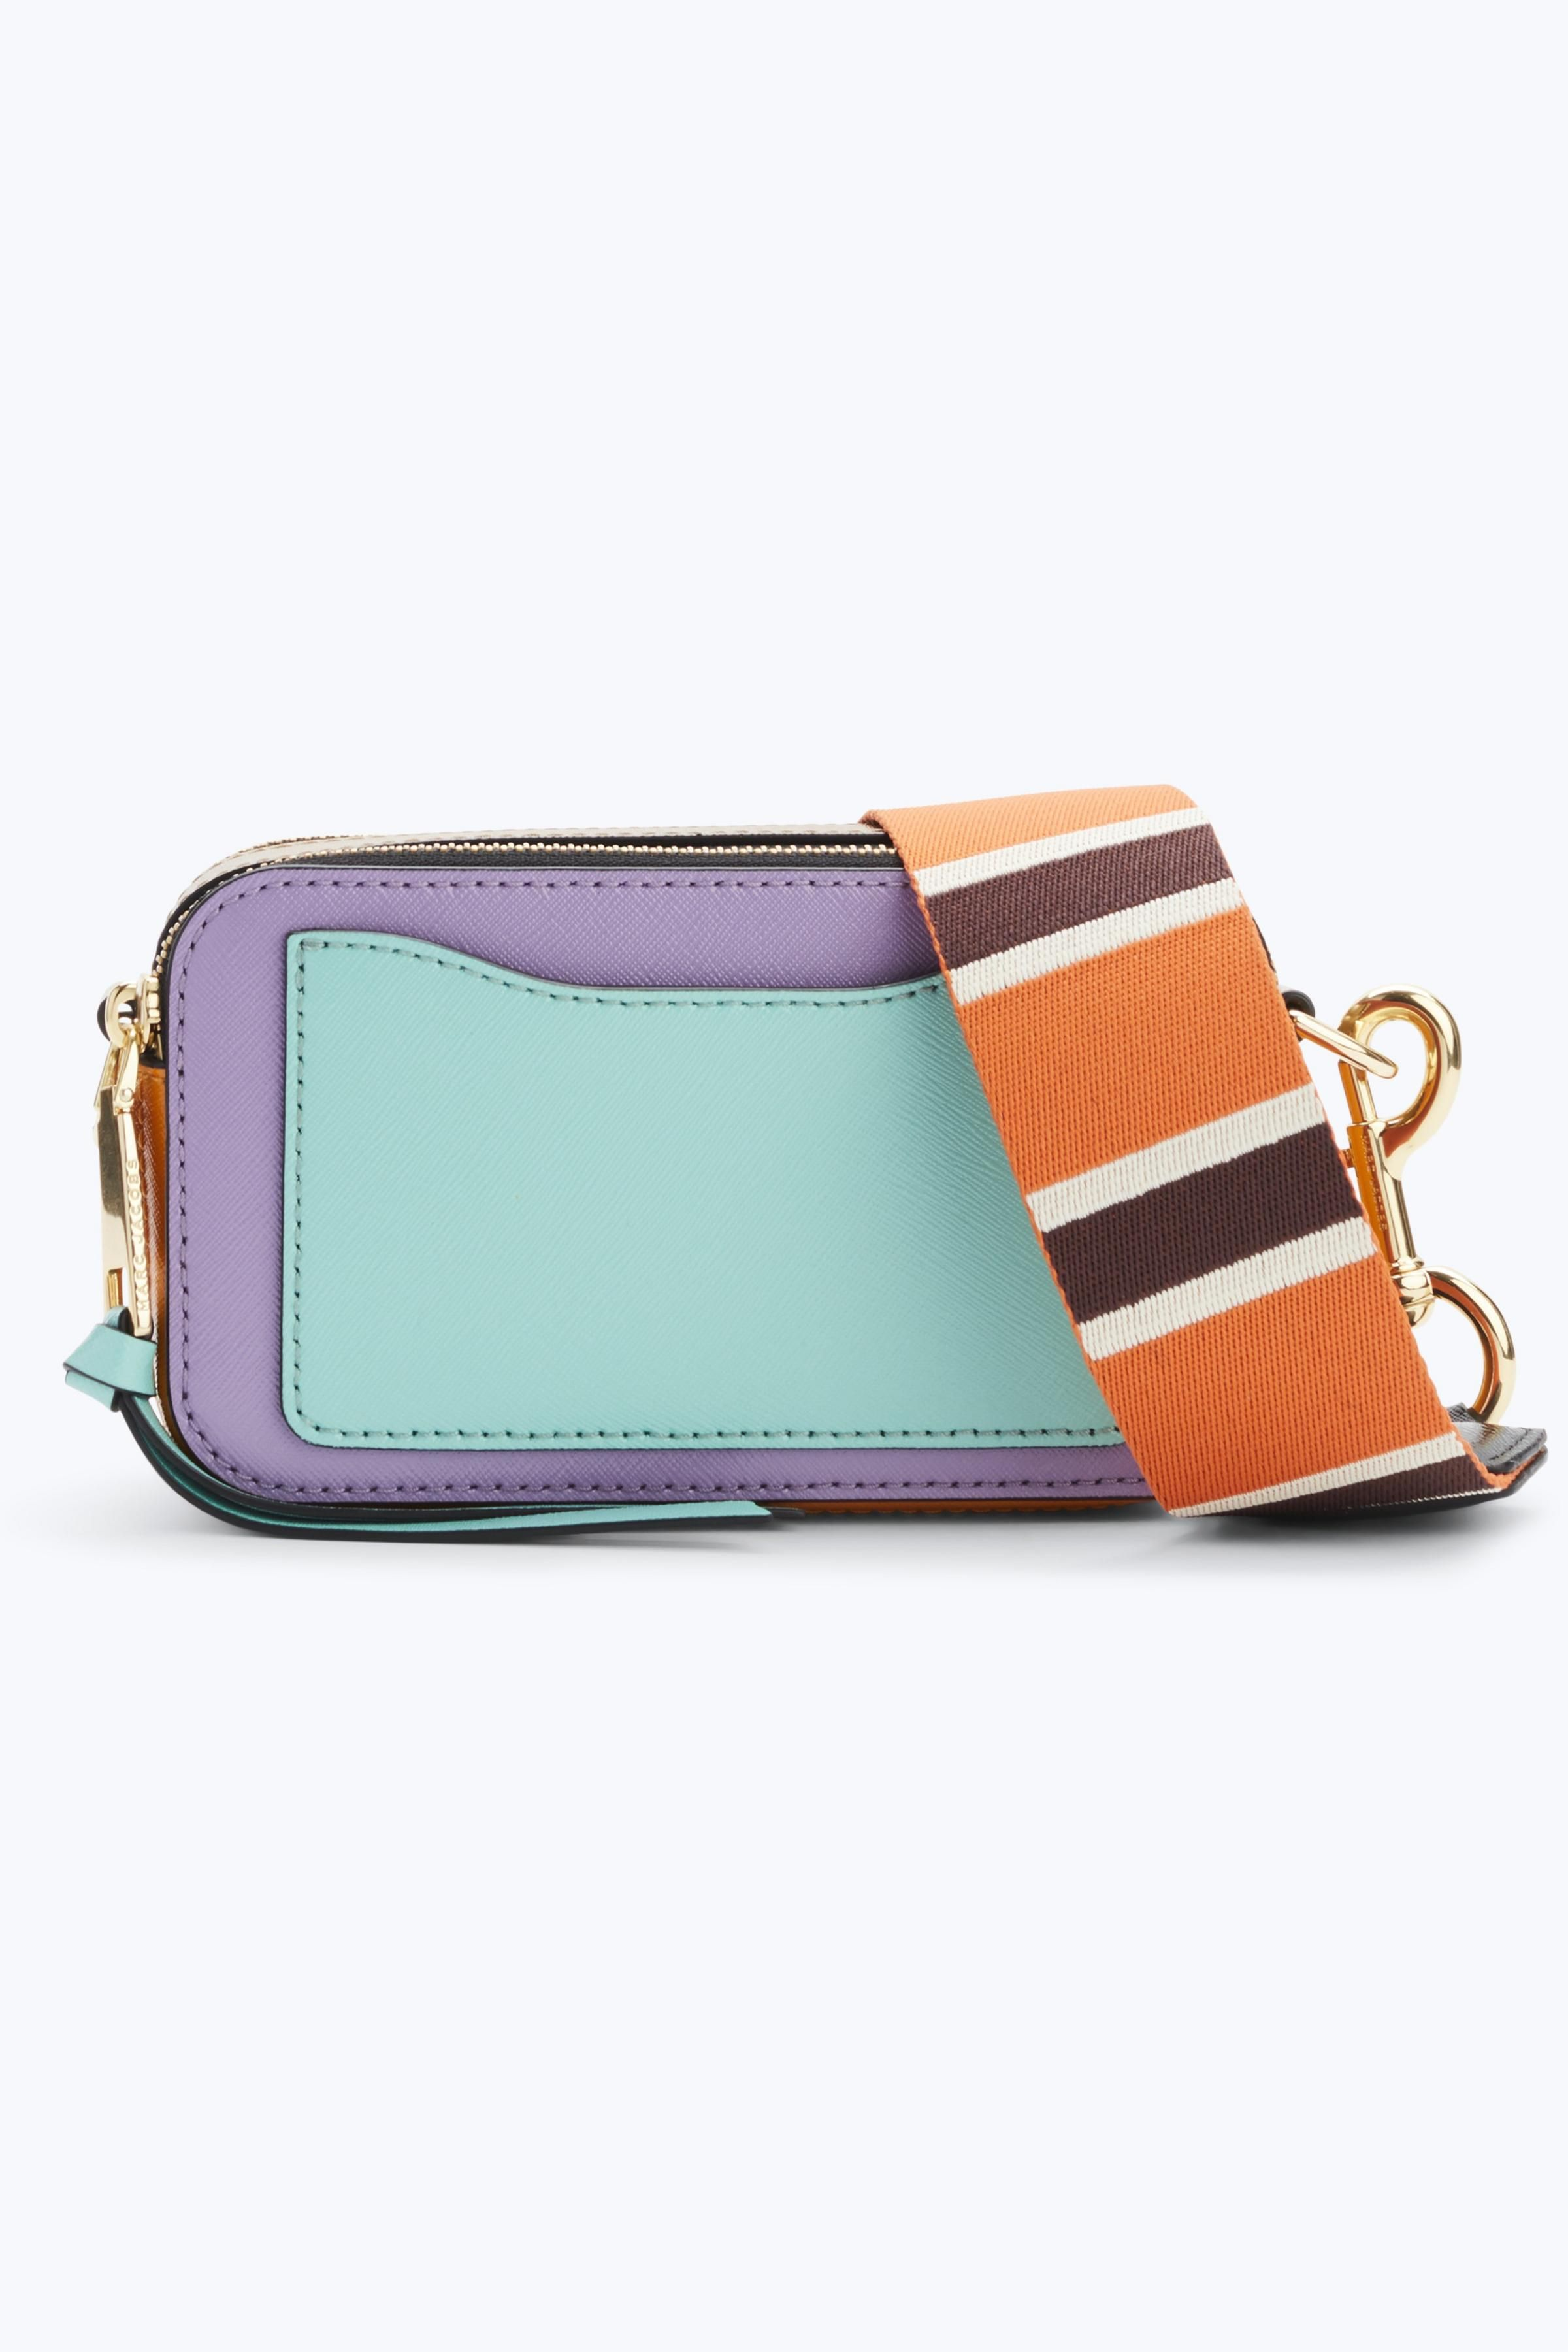 a1925cf789bc MARC JACOBS Snapshot Small Camera Bag in Hyacinth Multi | My ...